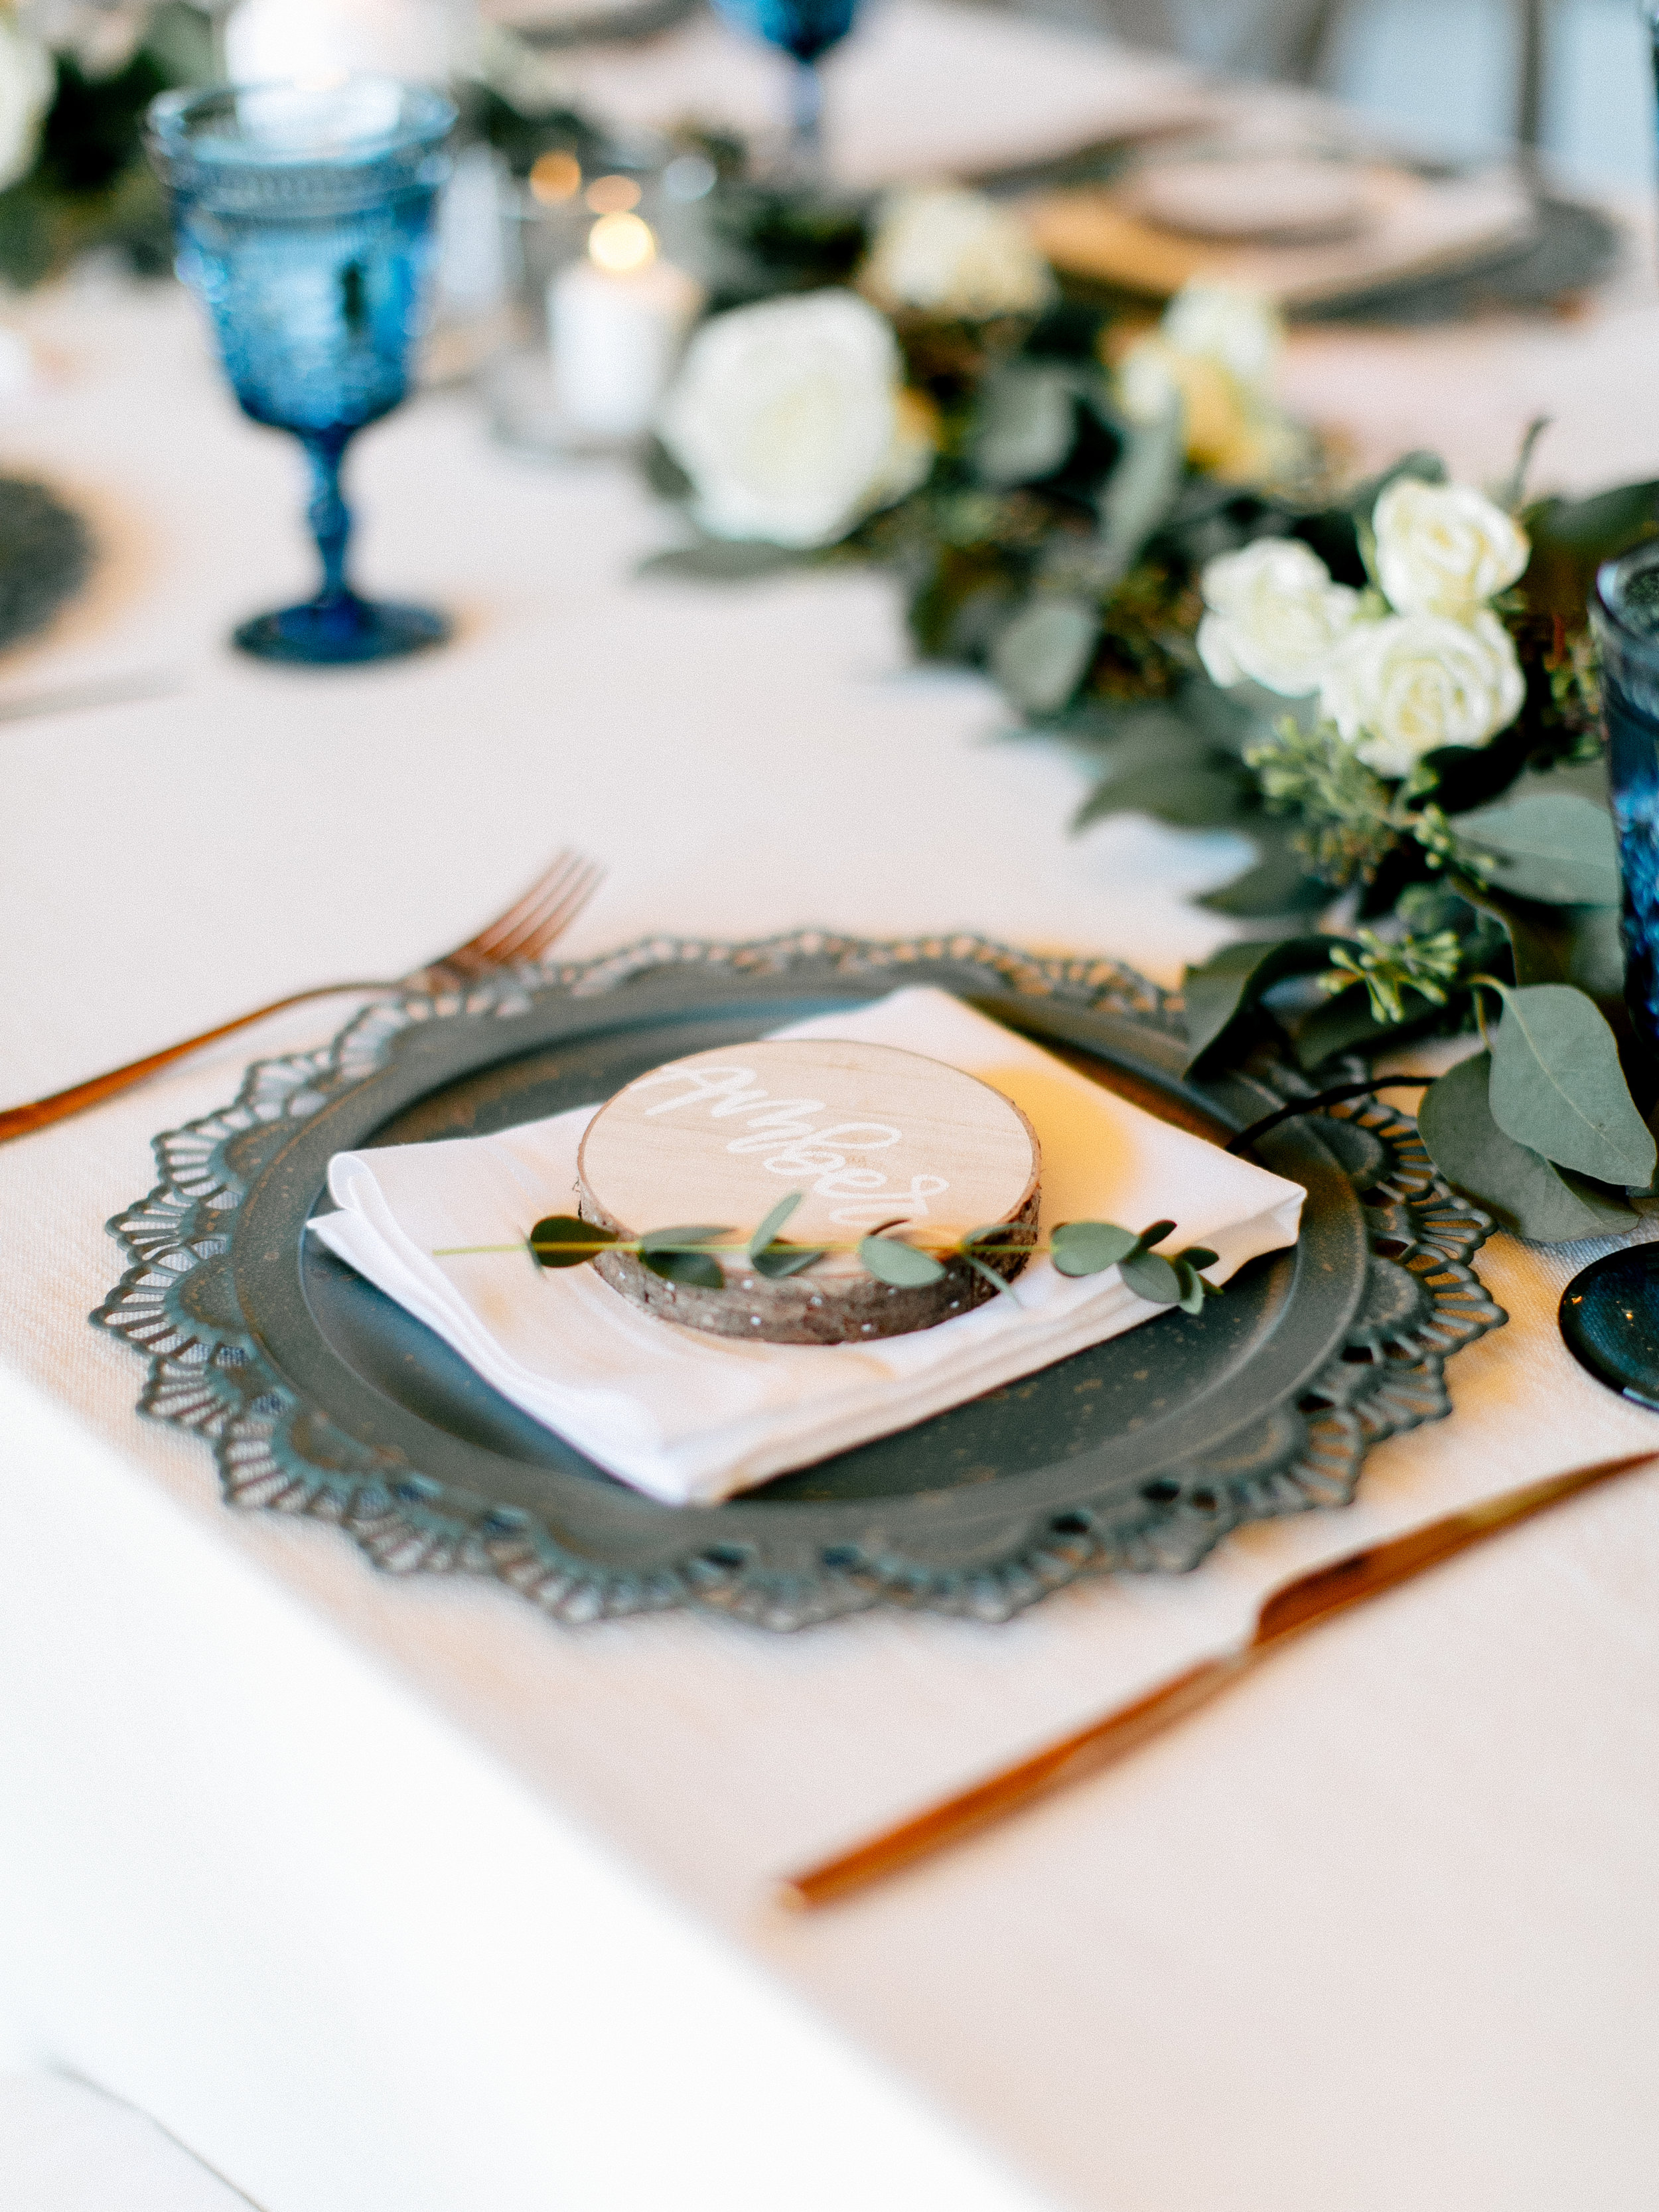 Event Design & Planning: Simple Little Details Photography: Magesta Patterson Venue: Fitz Place Calligraphy: BFlores Design Rentals: Williams Party Rentals Rentals: Hensley Event Resources Desserts: Sweet Tooth Confections Bakery Balloons: San Jose Balloons Hair: Chris Dylan Hair